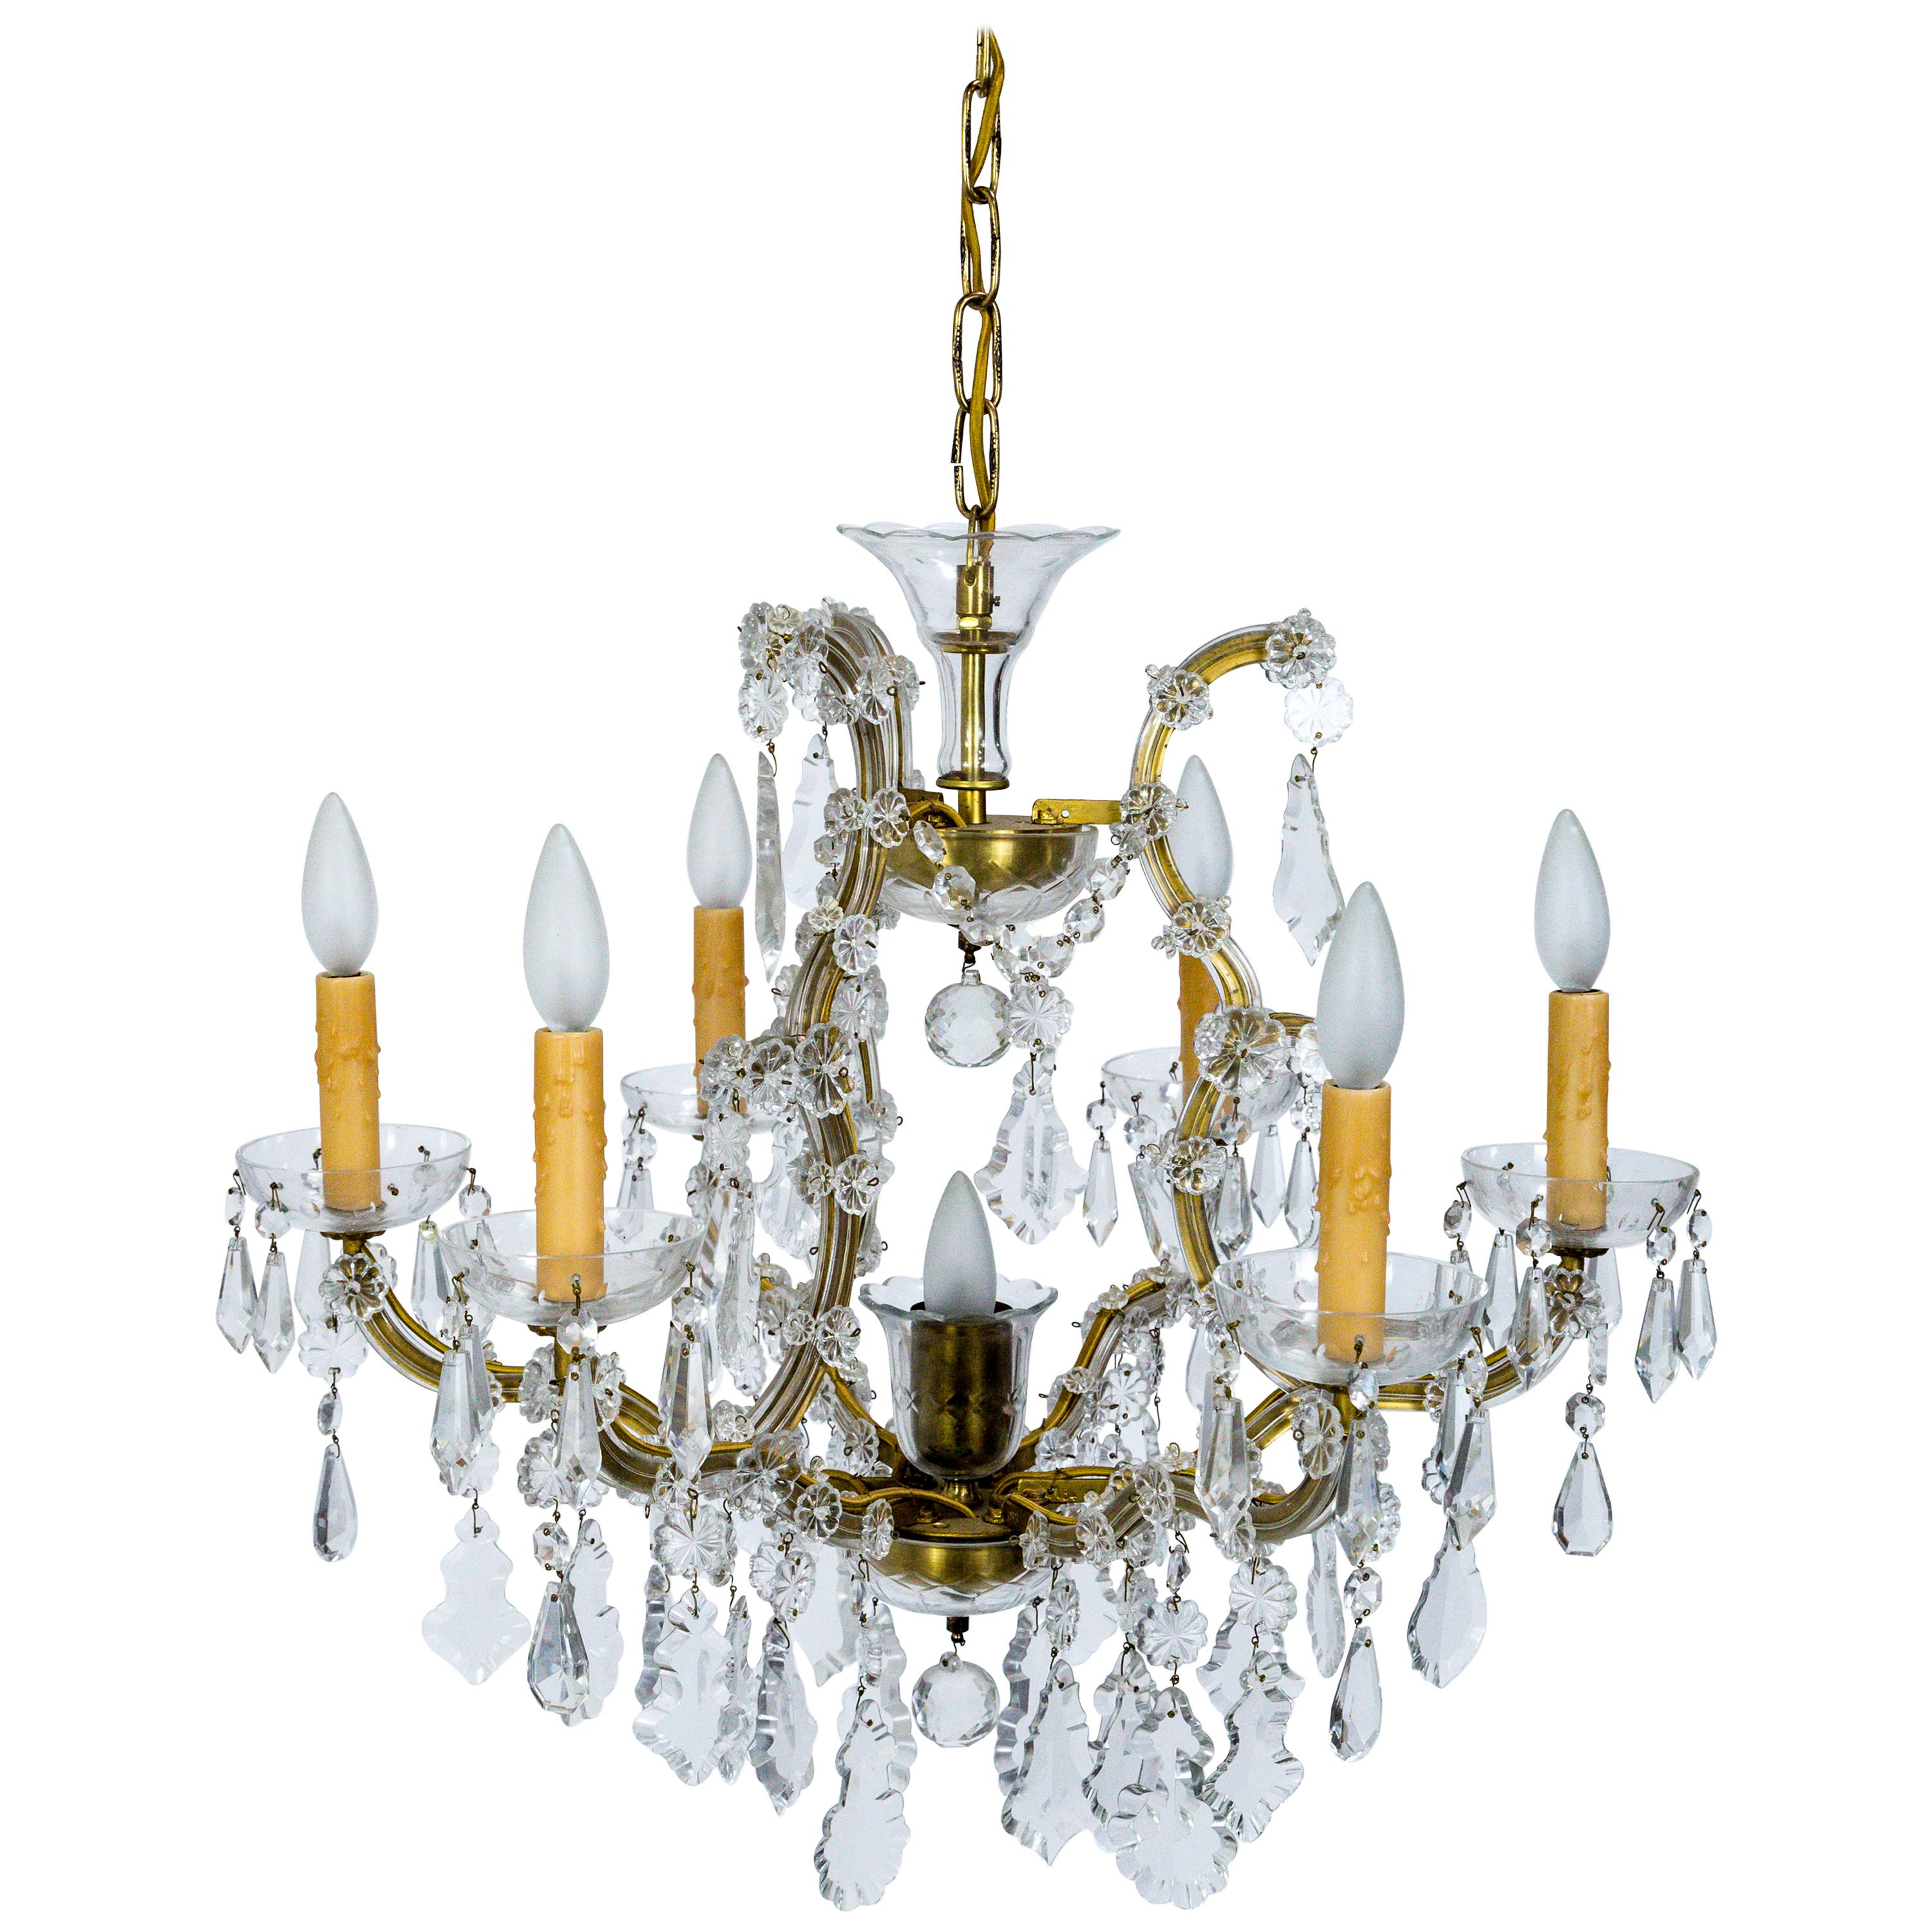 Seven-Light Maria Theresa Style Crystal Chandelier